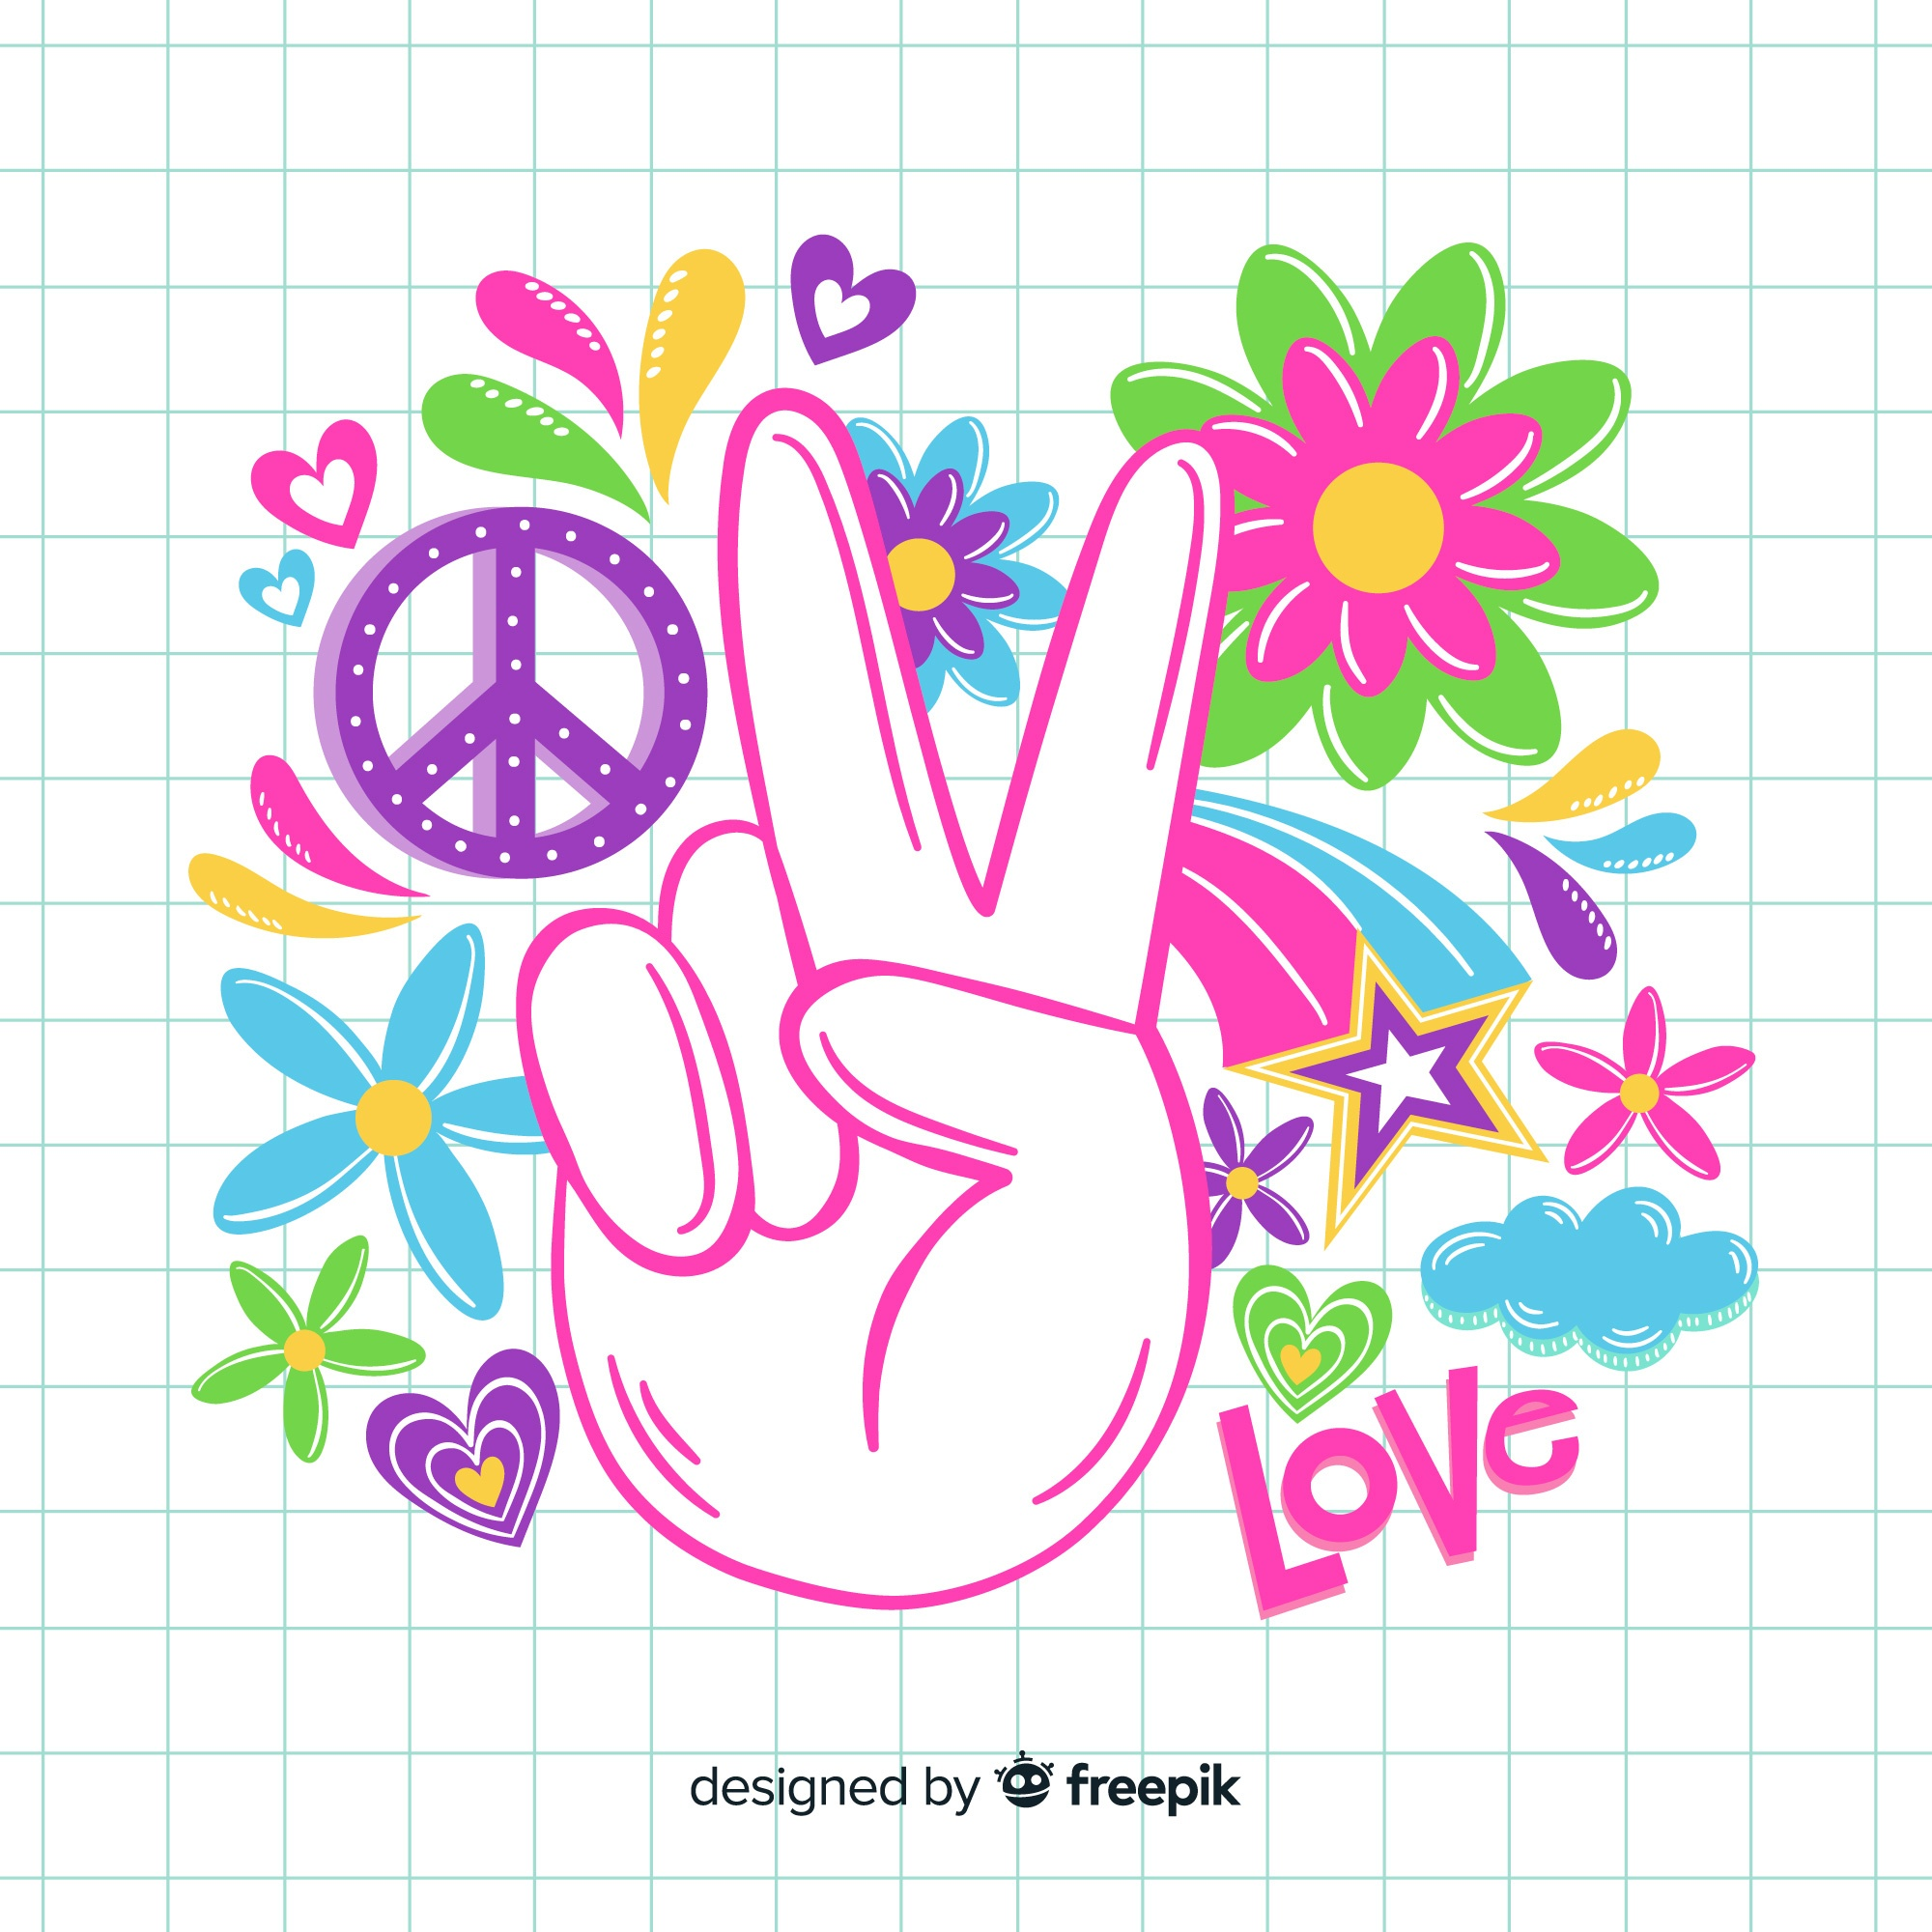 Vintage peace sign hand